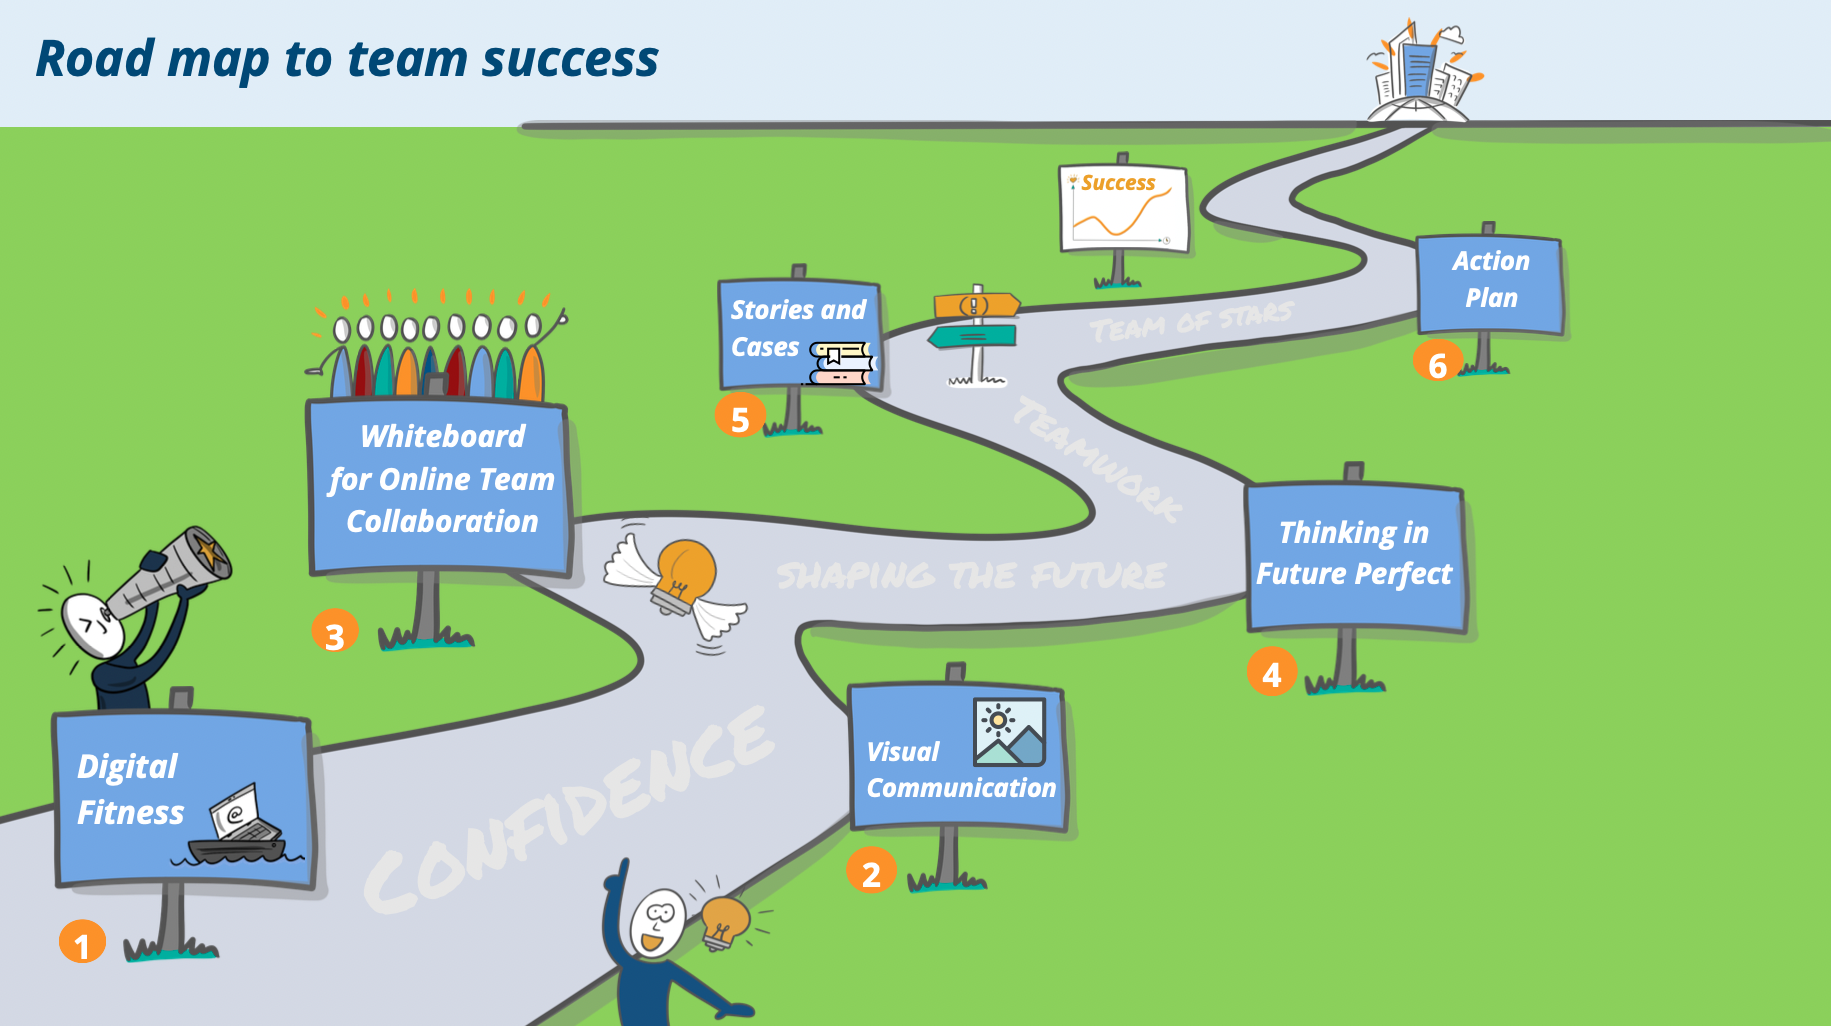 Online Teamwork Success Roadmap